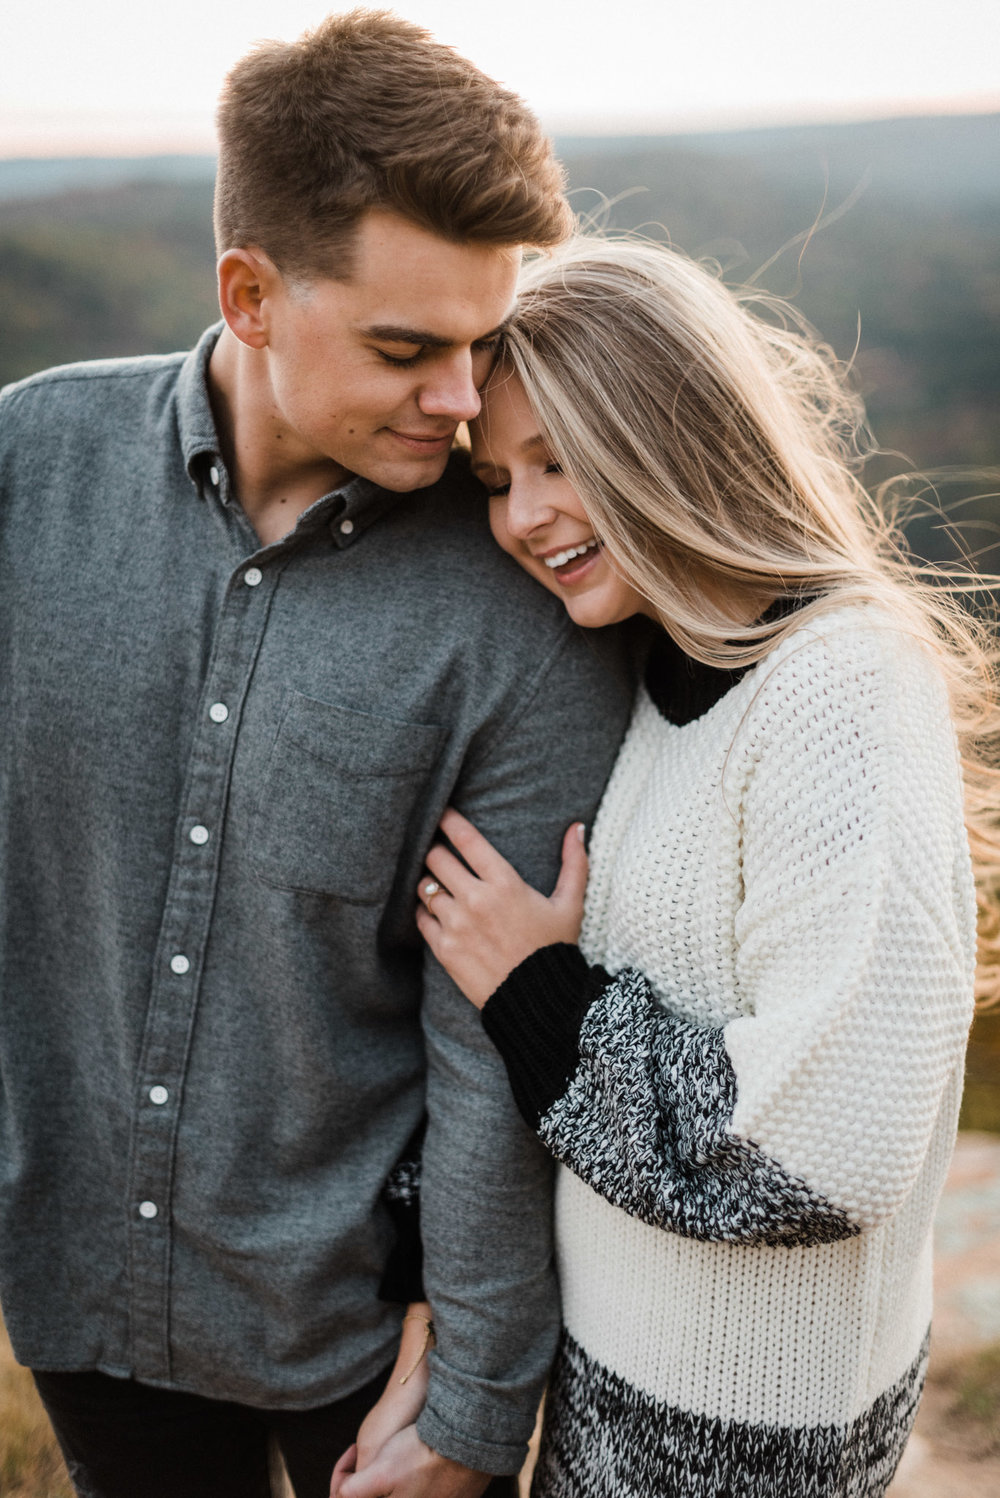 Tanner Burge Photography - Leah & Colby Adventure Engagement Session Petit Jean State Park.jpg